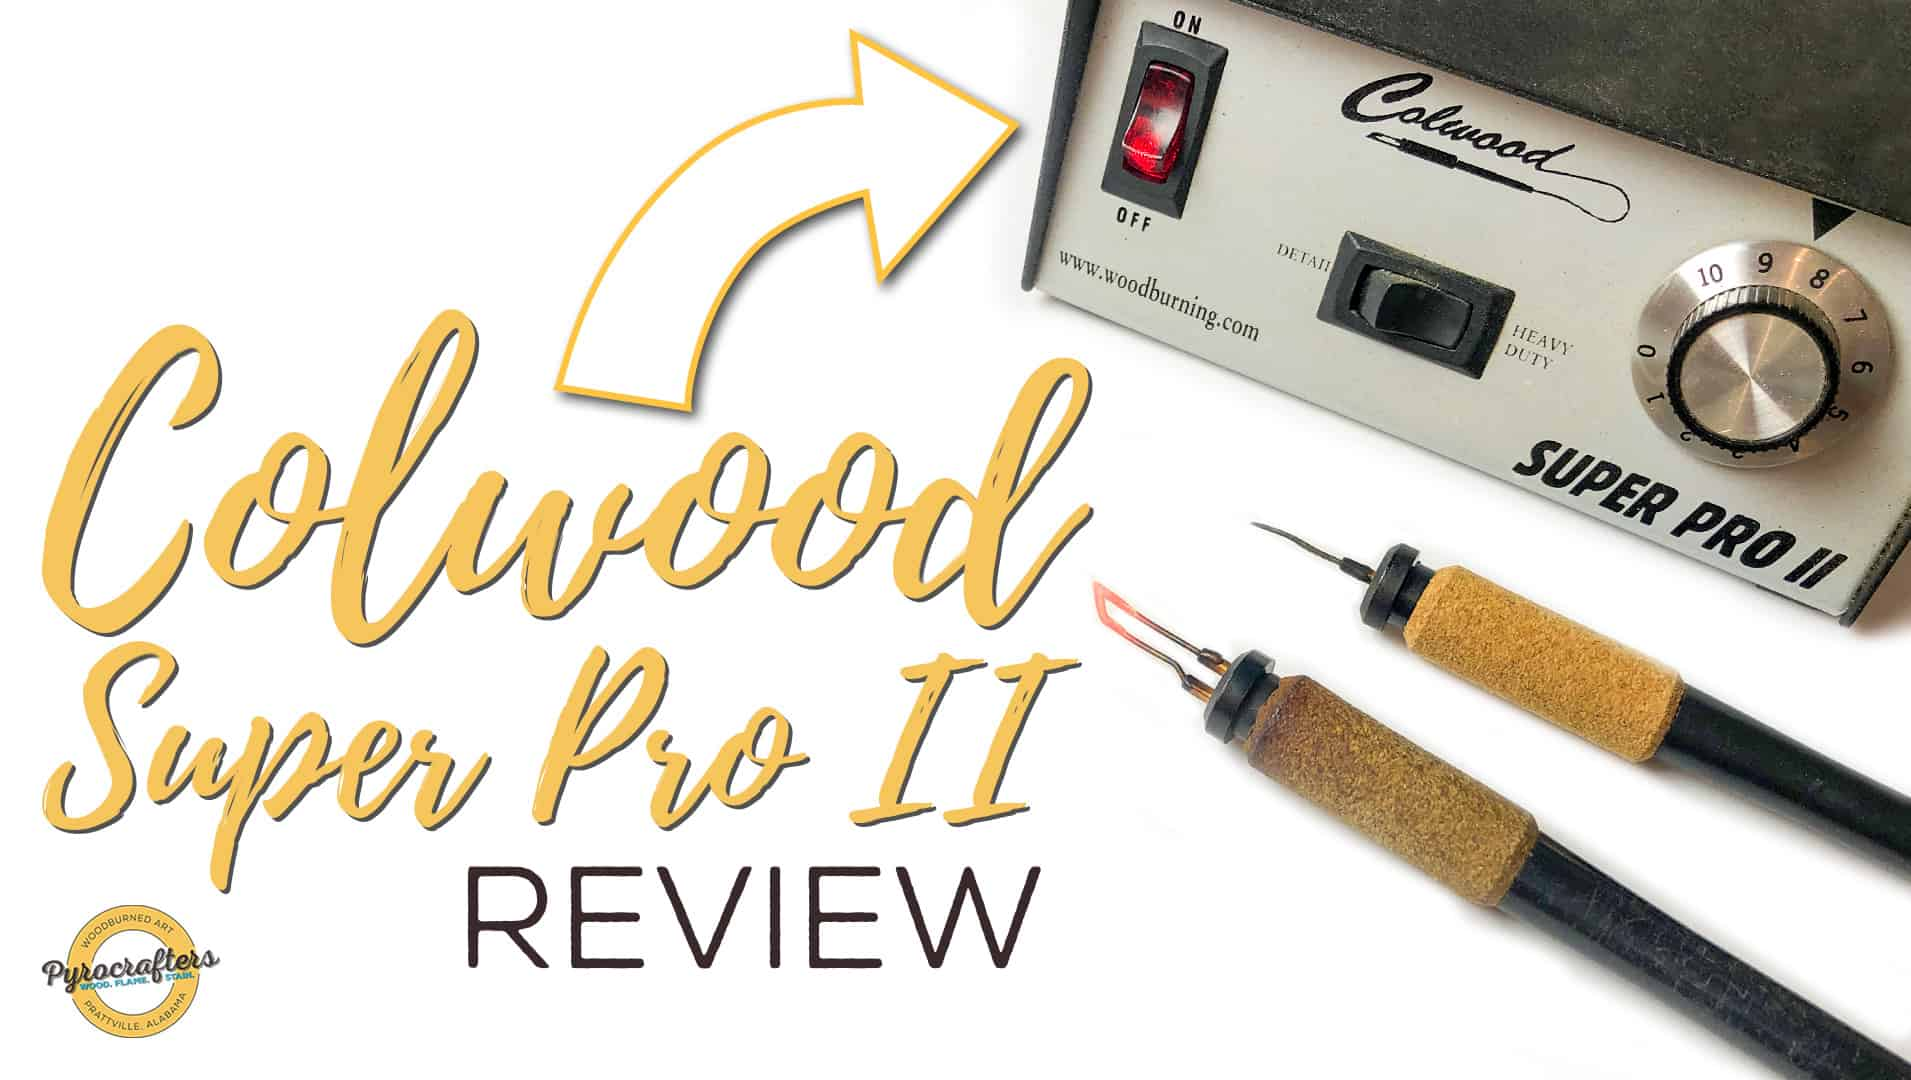 Colwood Super Pro II Review